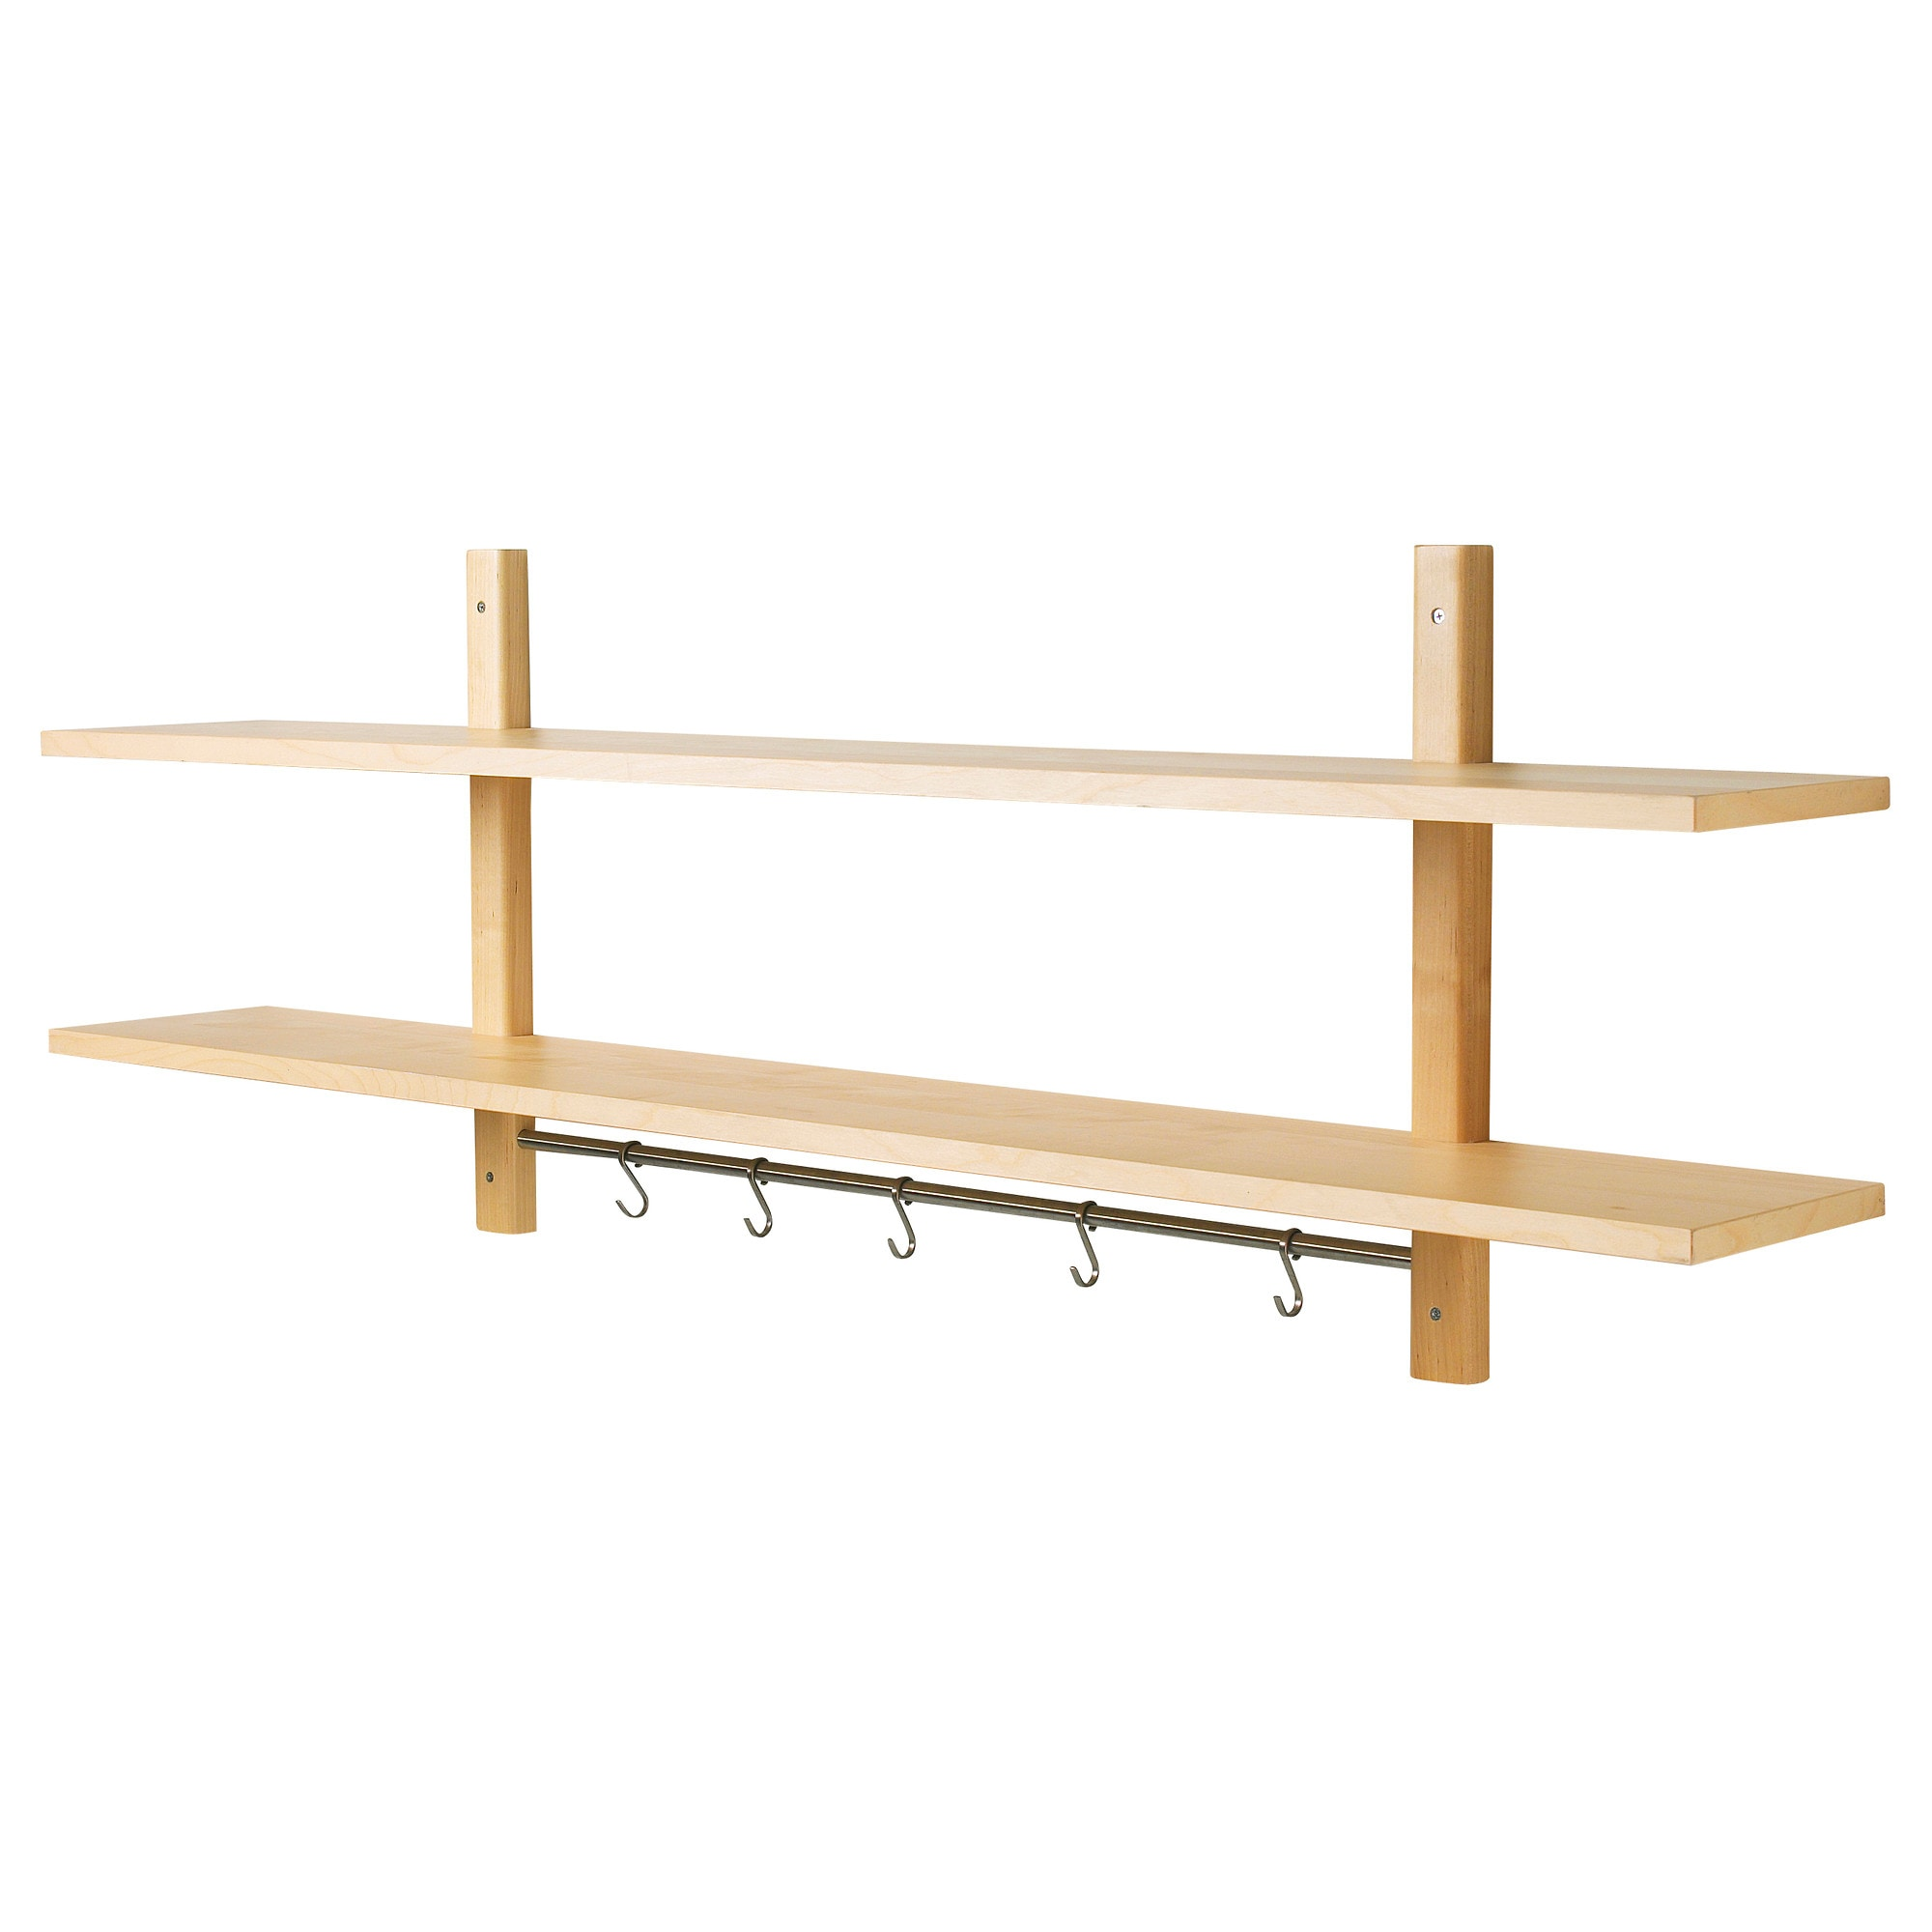 Ikea varde wall kitchen shelf with 5 hooks solid birch ebay for Etagere murale avec rebord